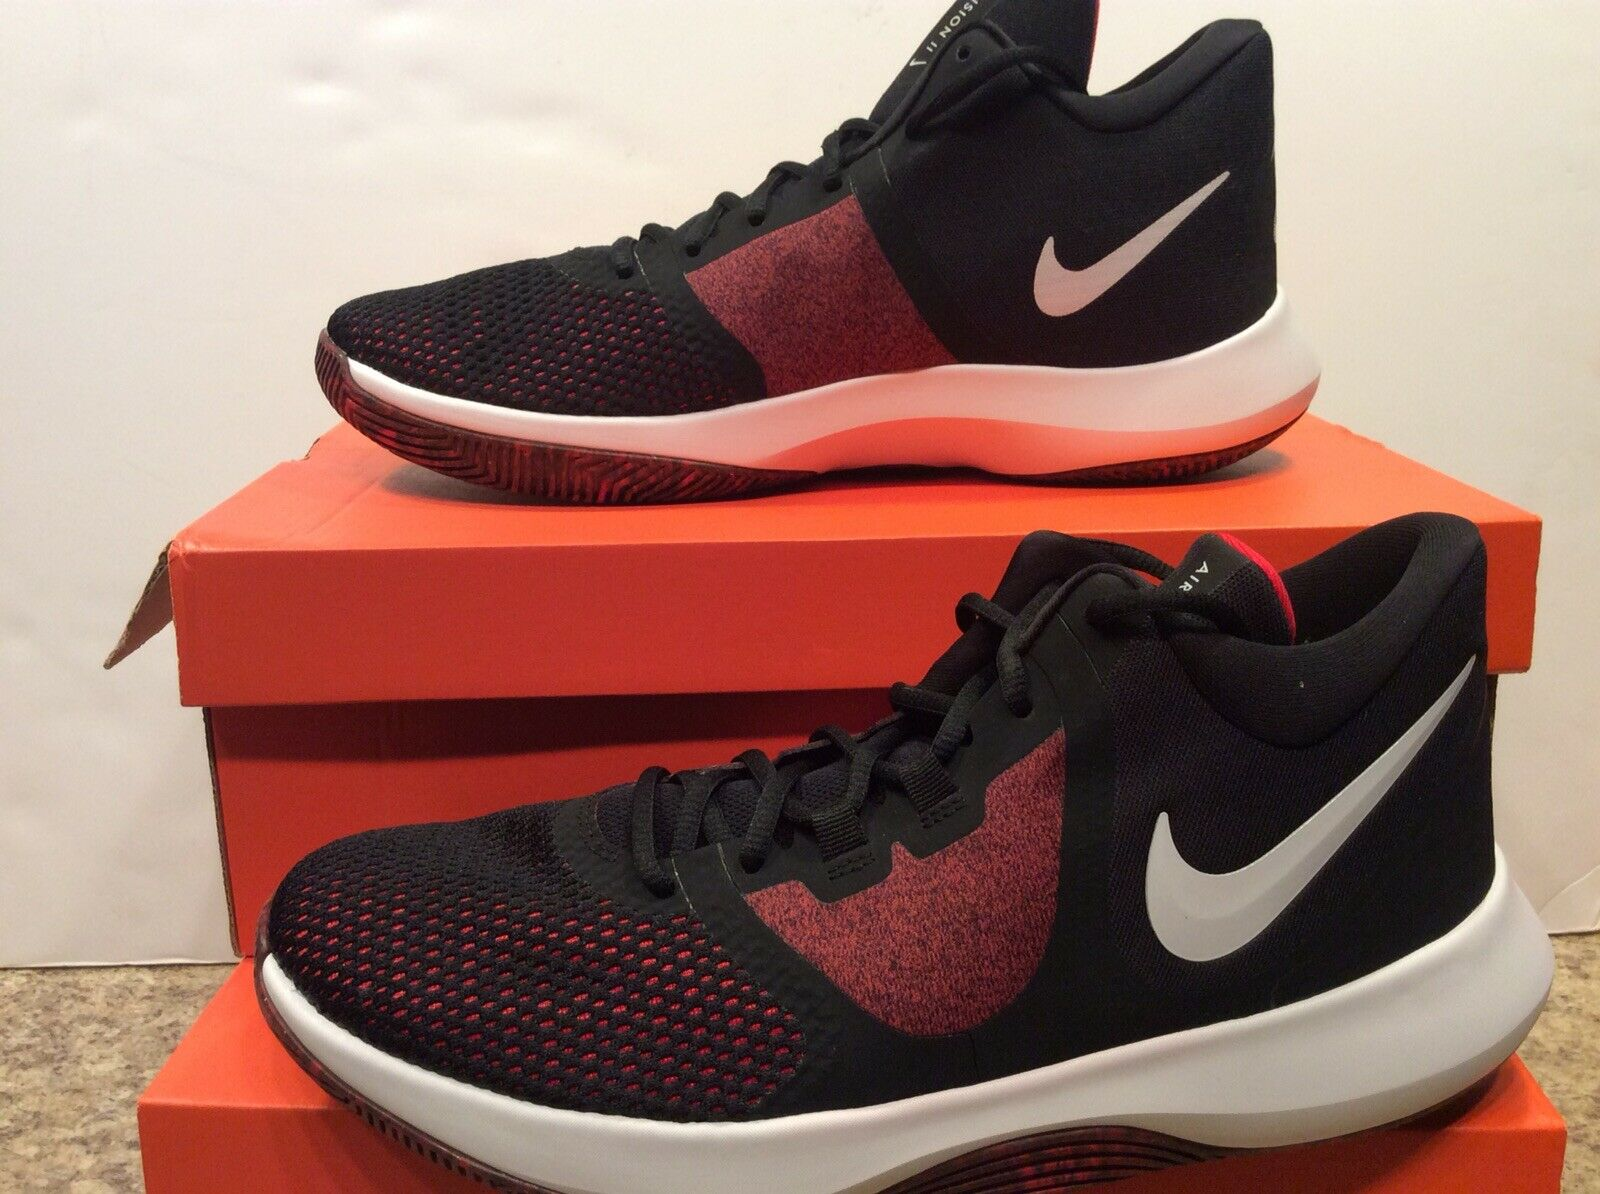 NEW MEN'S NIKE AIR PRECISION II 2 BASKETBALL SHOES BLACK RED AA7069-006 Sz 11